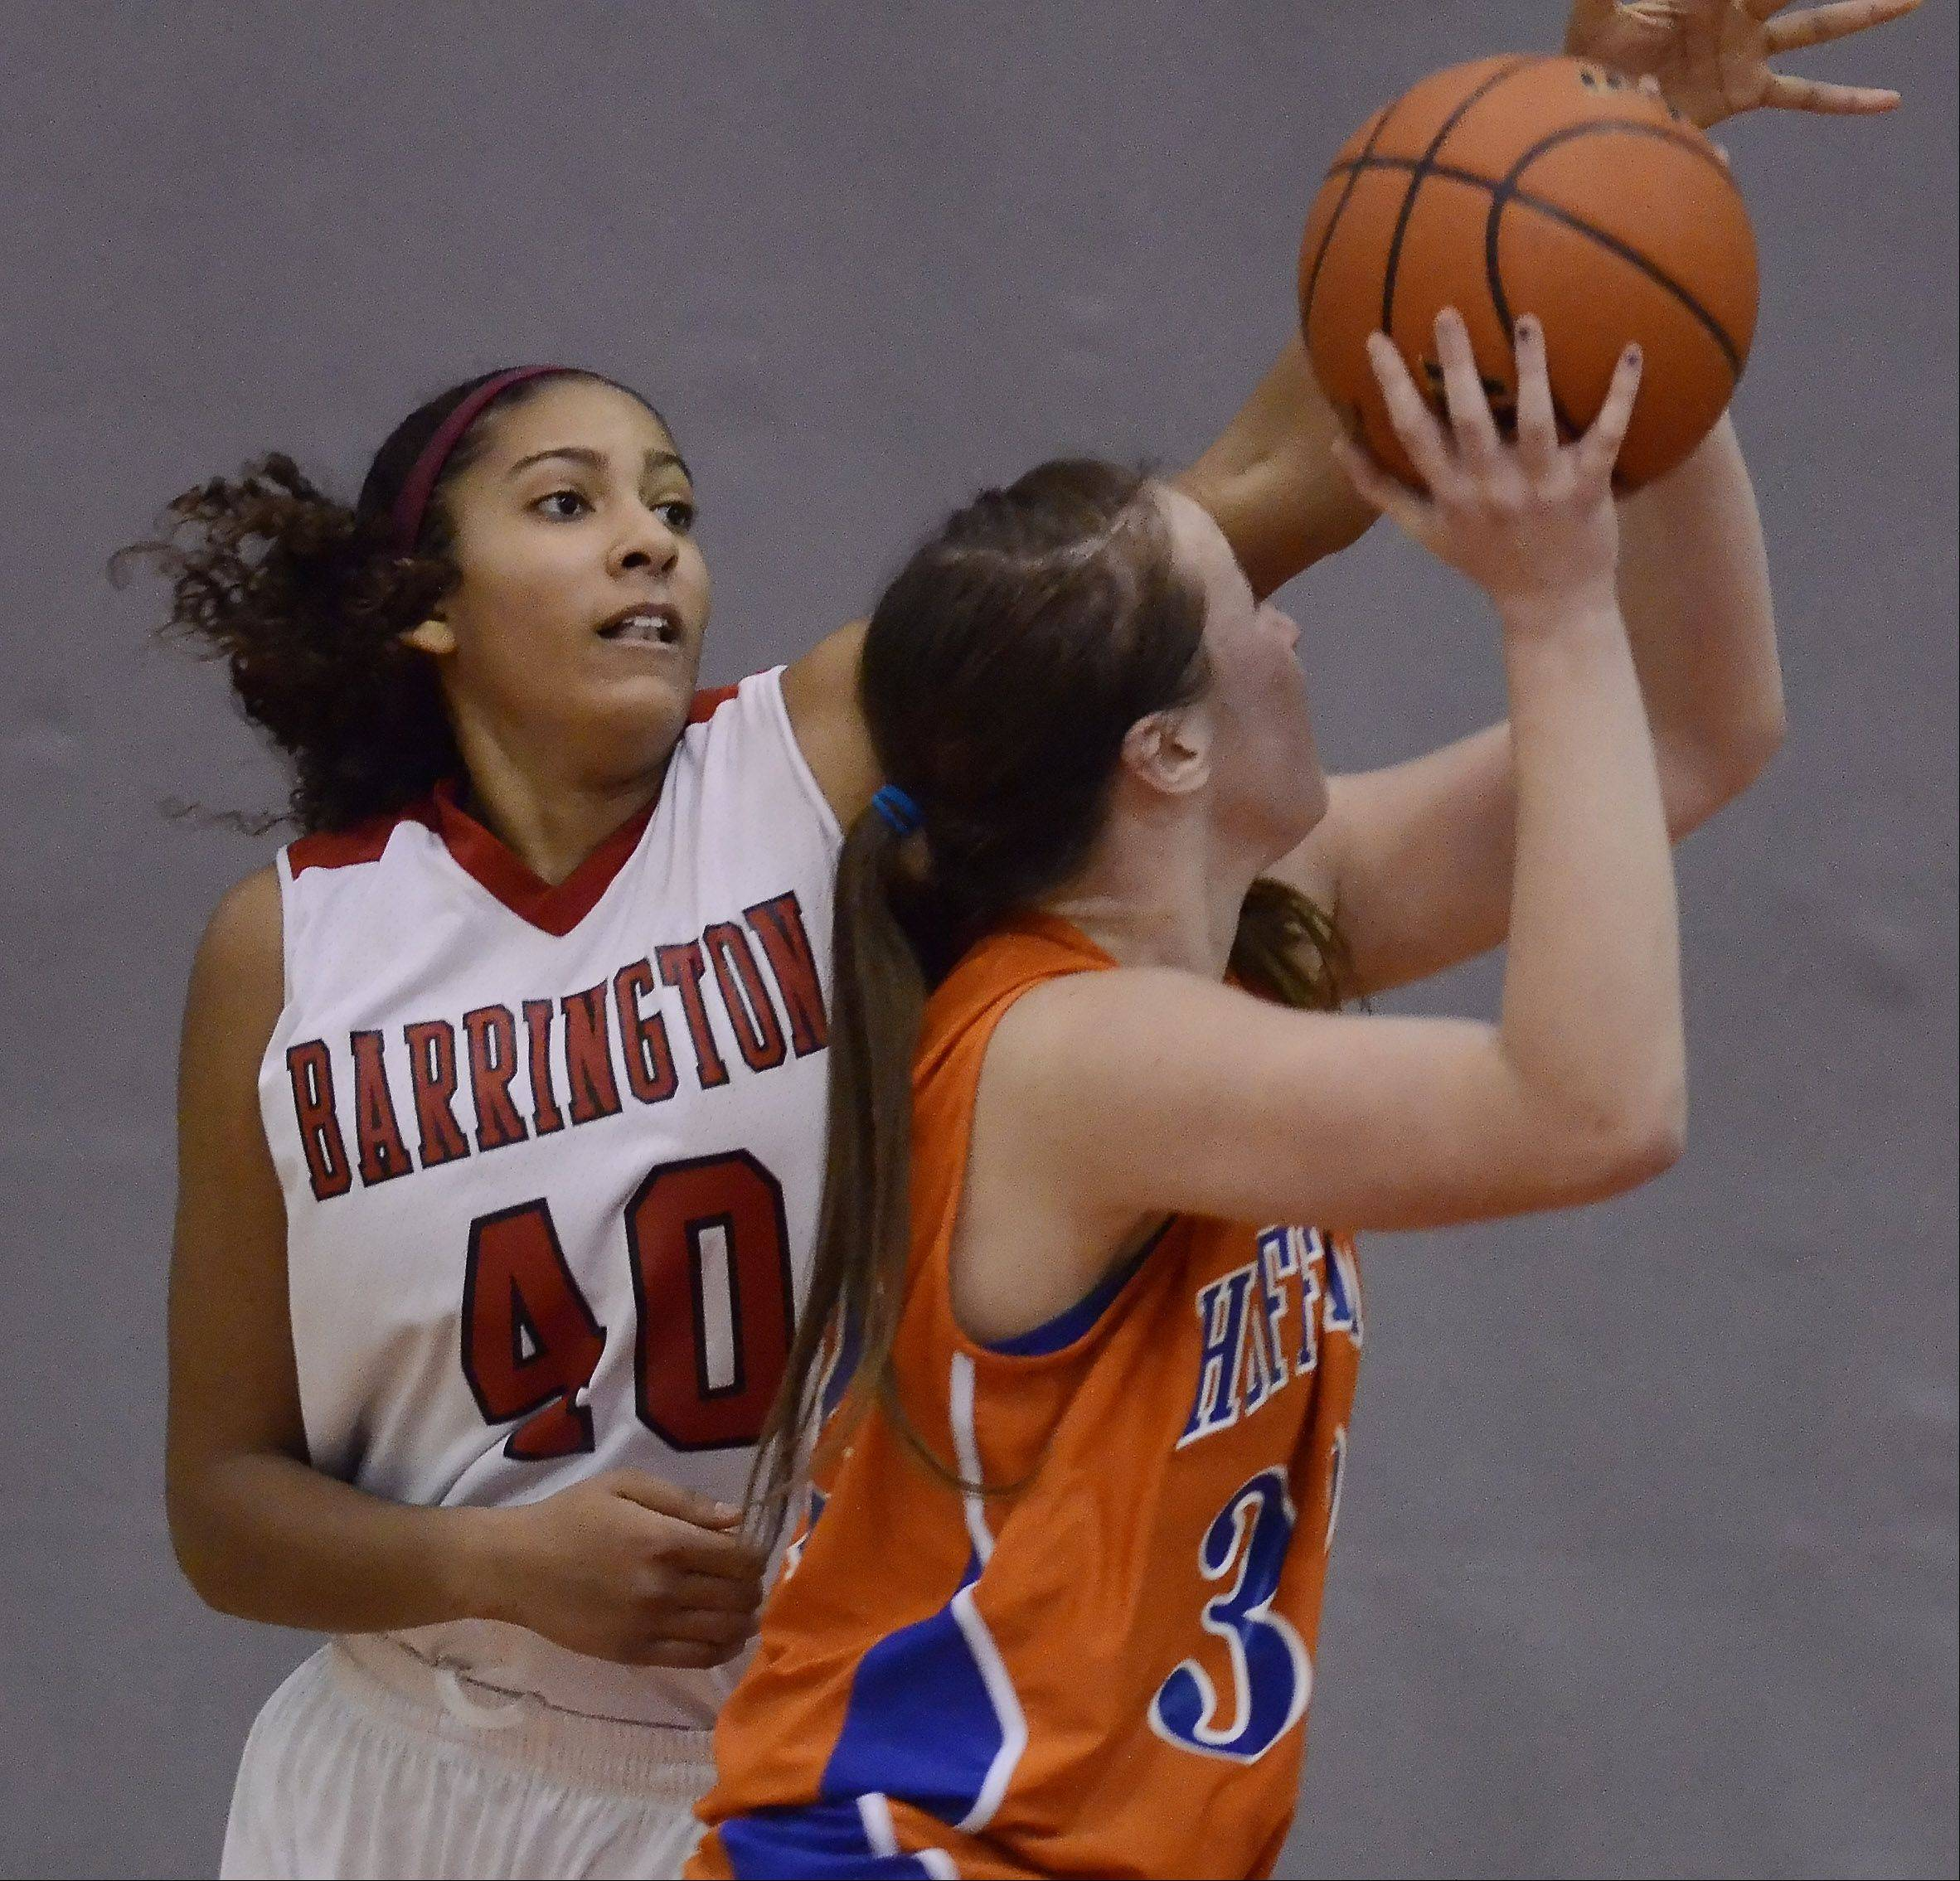 Barrington's Bryana Hopkins, left, blocks the shot of Hoffman Estates' Becca Stoczynski.